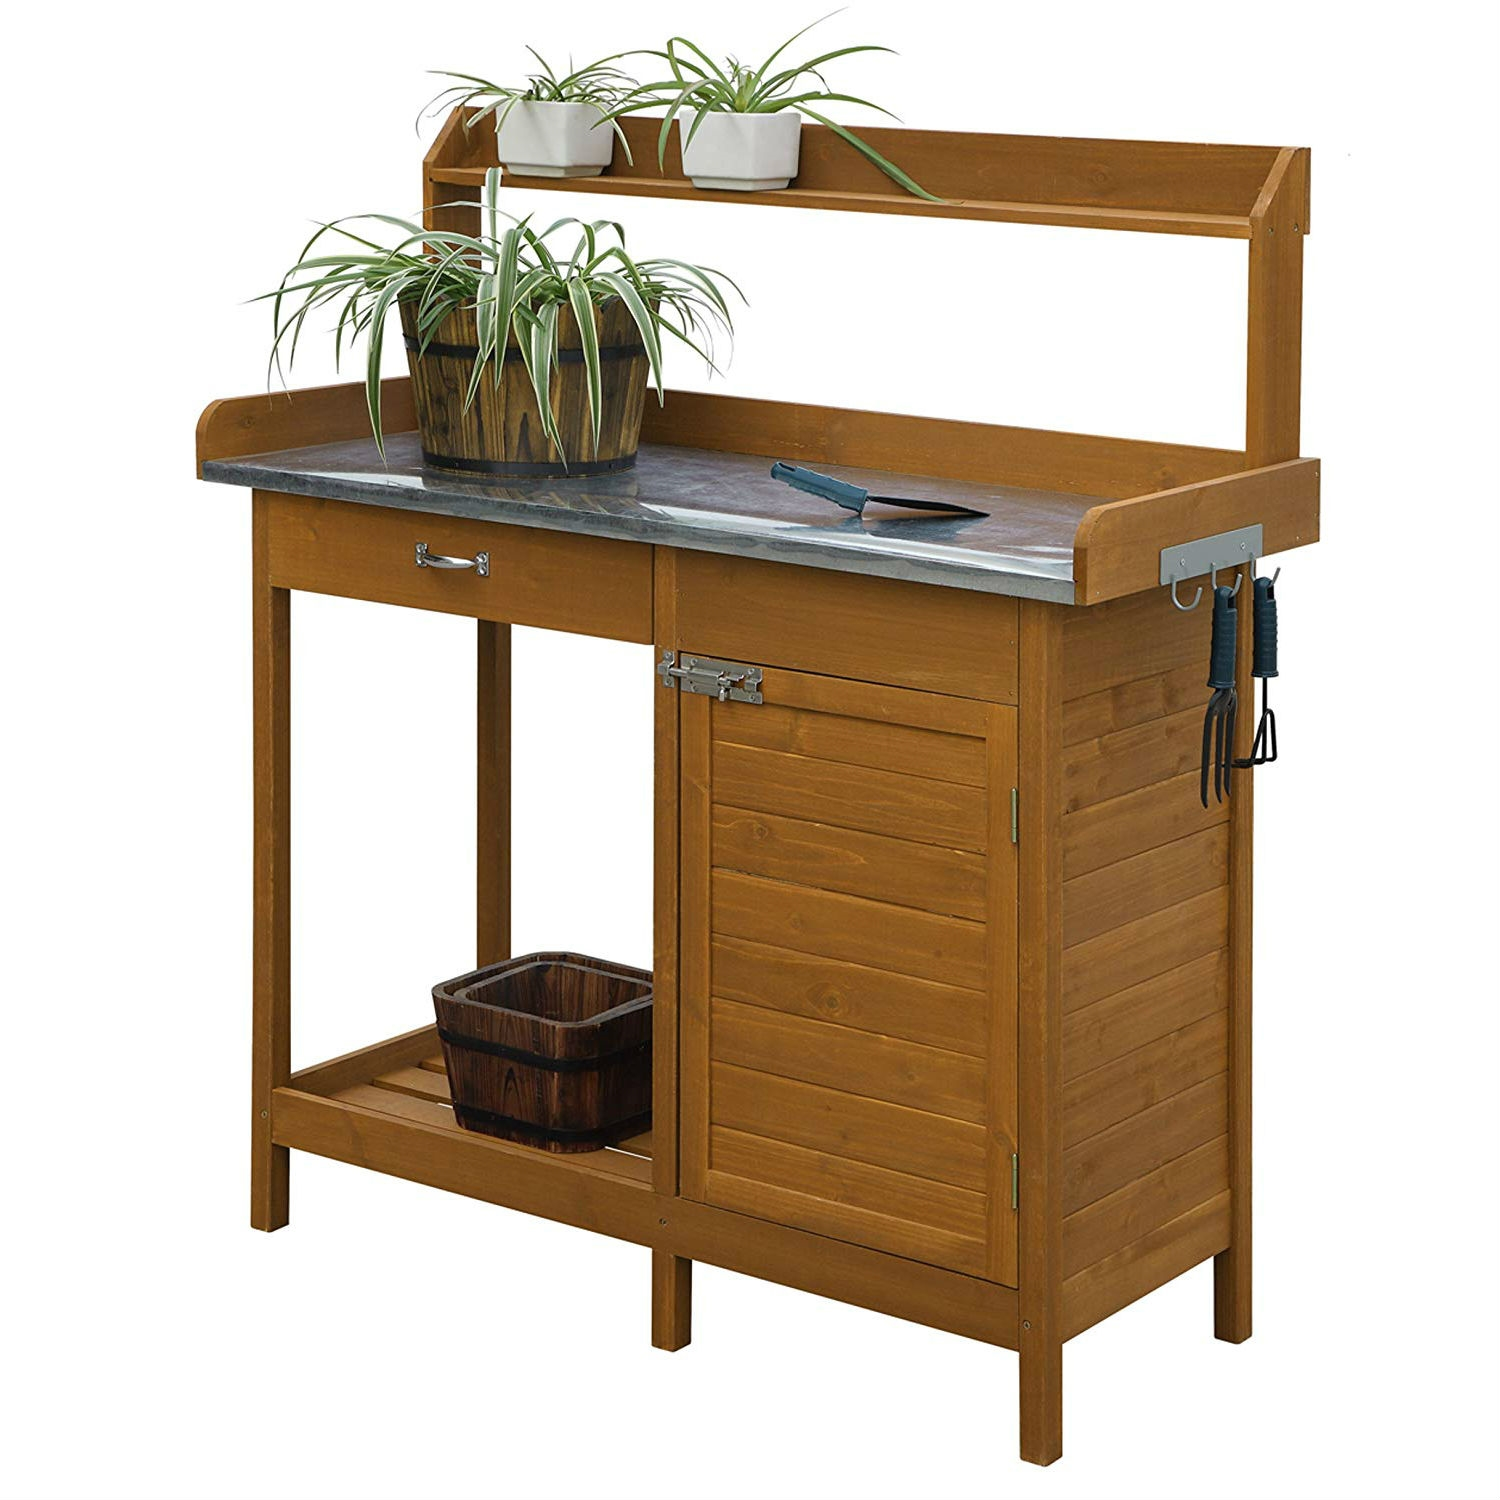 Outdoor Home Garden Potting Bench with Metal Table Top and Storage ...